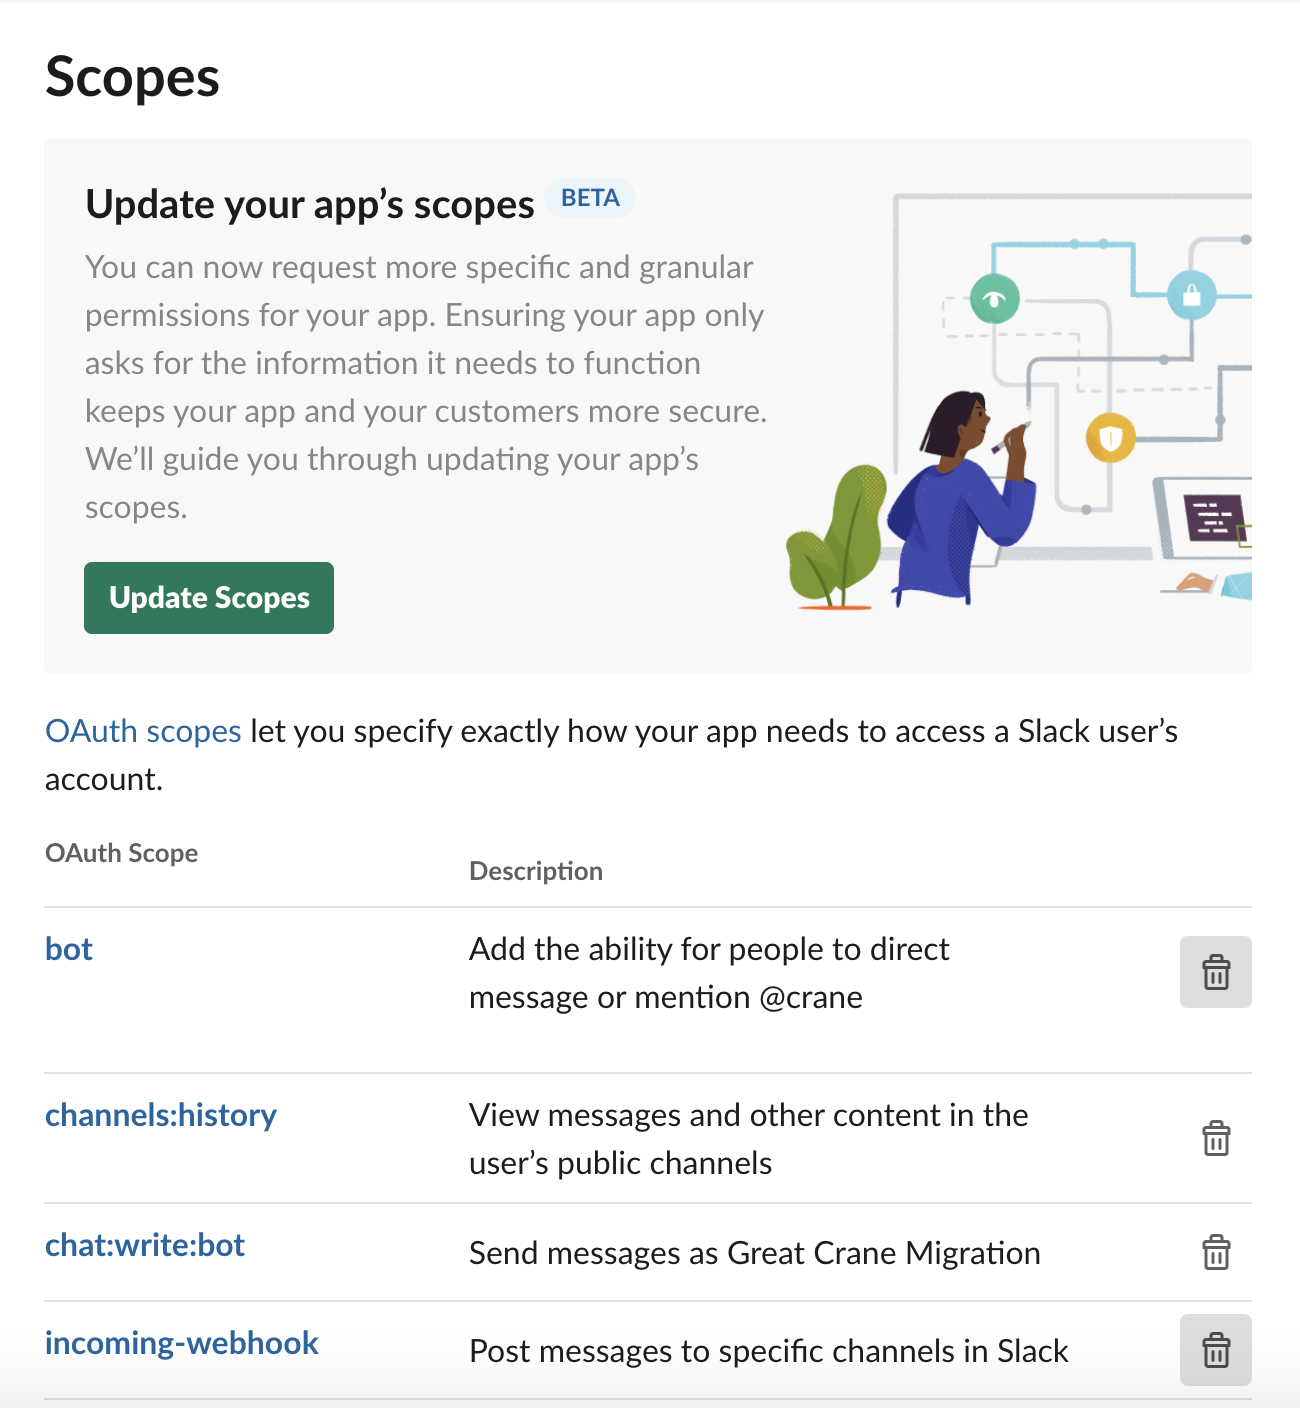 Link to new scope update tool found in app management page